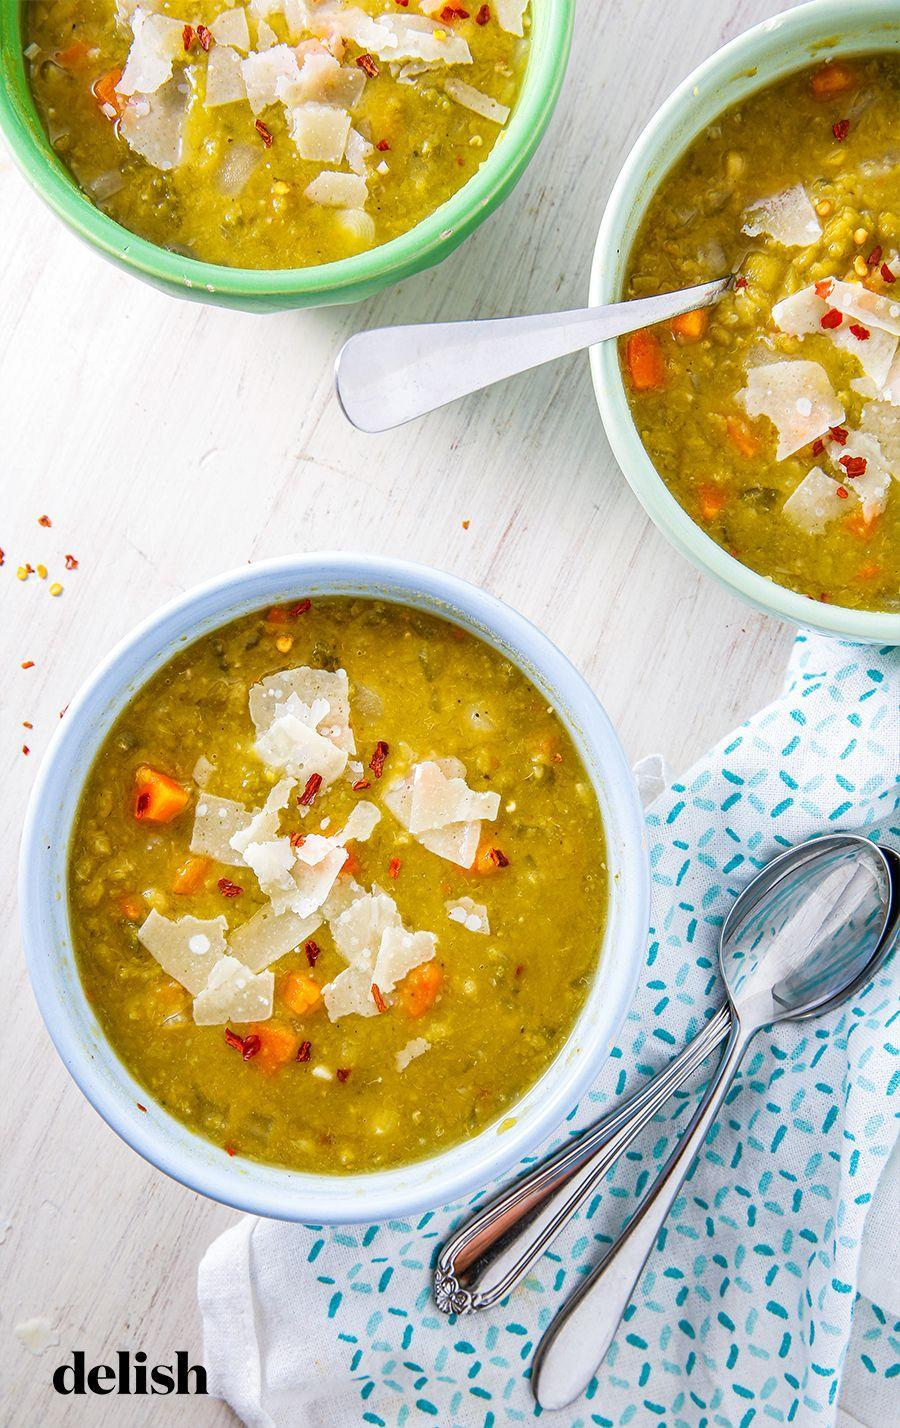 """<p>Just like our favorite fall sweater, we can't wait to break this recipe out once the cooler weather comes around.</p><p>Get the recipe from <a href=""""https://www.delish.com/cooking/recipe-ideas/a28223331/slow-cooker-split-pea-soup-recipe/"""" rel=""""nofollow noopener"""" target=""""_blank"""" data-ylk=""""slk:Delish"""" class=""""link rapid-noclick-resp"""">Delish</a>.</p>"""